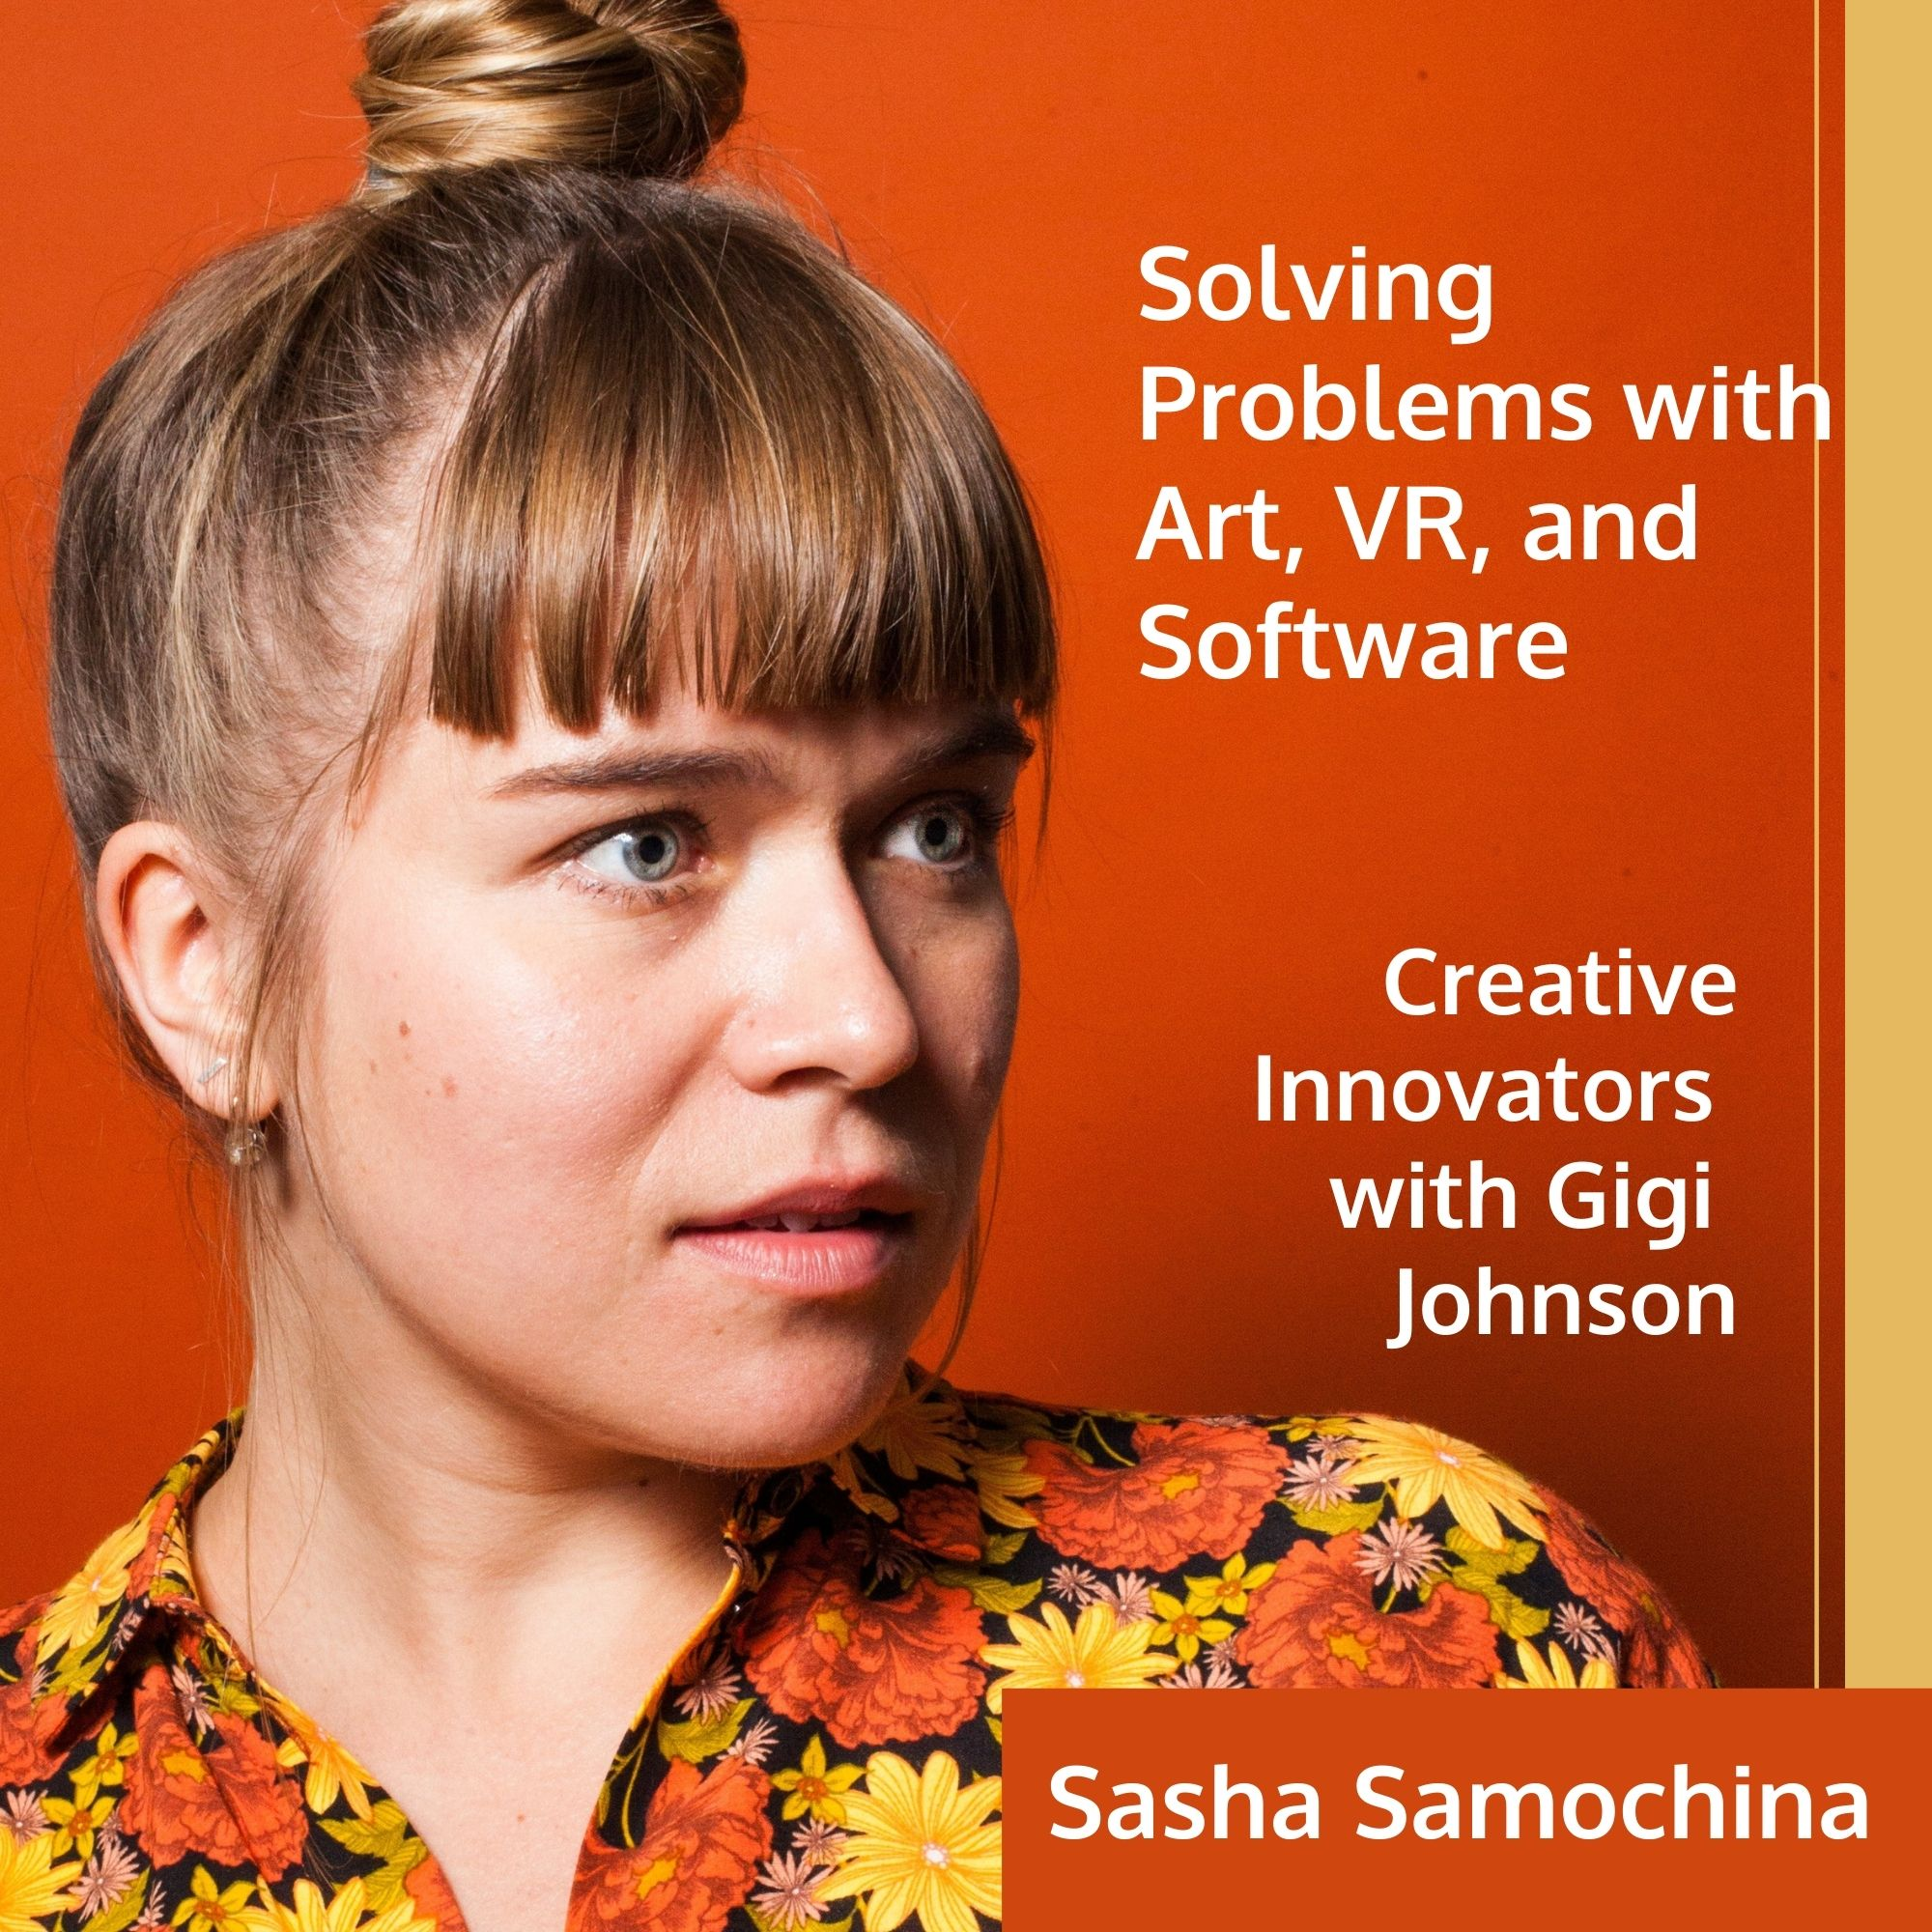 Creative Innovators with Gigi Johnson